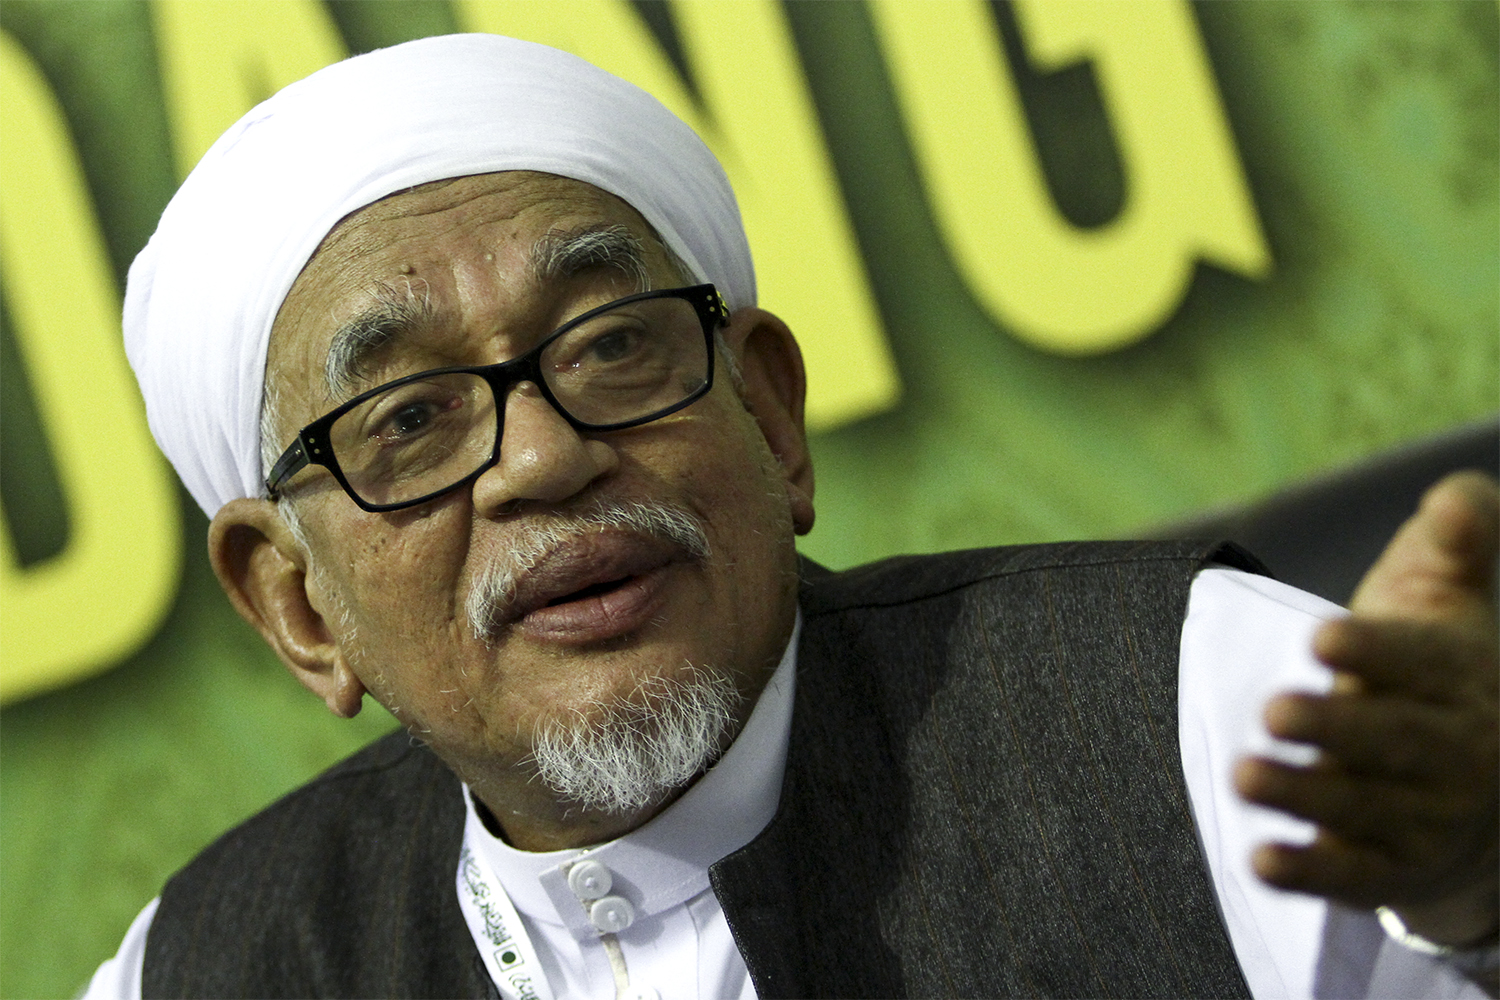 On Monday, the High Court here struck out the lawsuit filed by the four who had wanted to block PAS president Datuk Seri Abdul Hadi Awang from tabling any Private Member's Bill on hudud. — Picture by Yusof Mat Isa